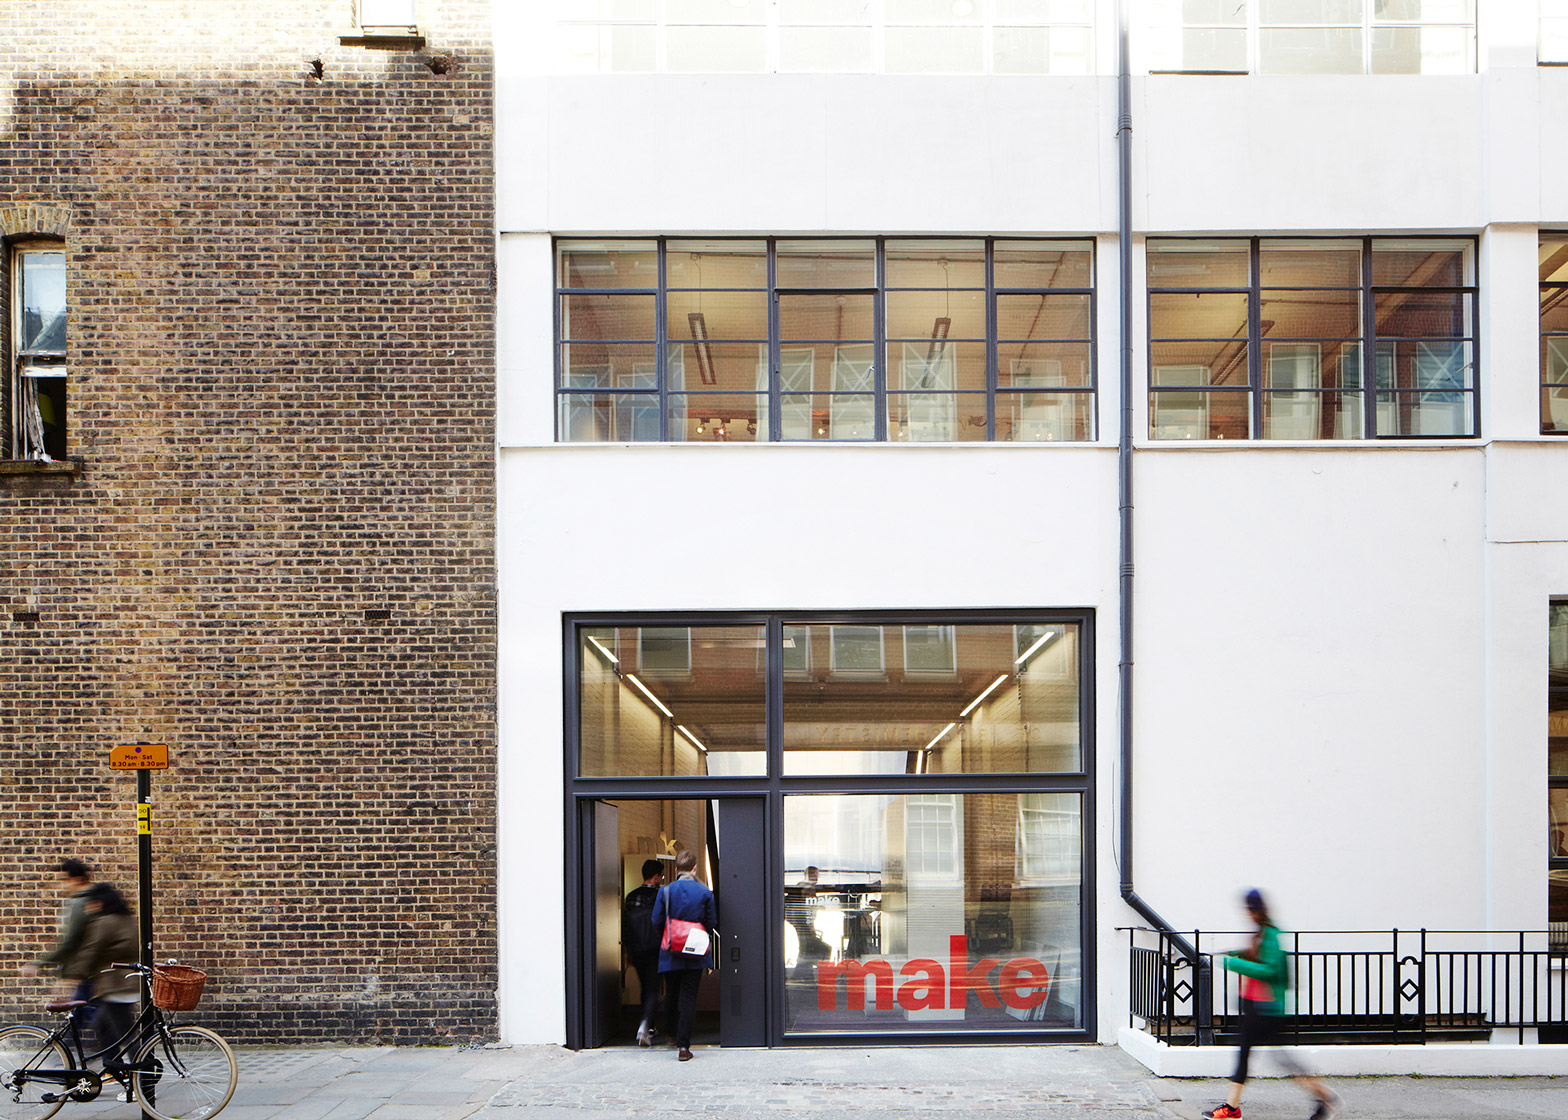 Make Architect's office in London